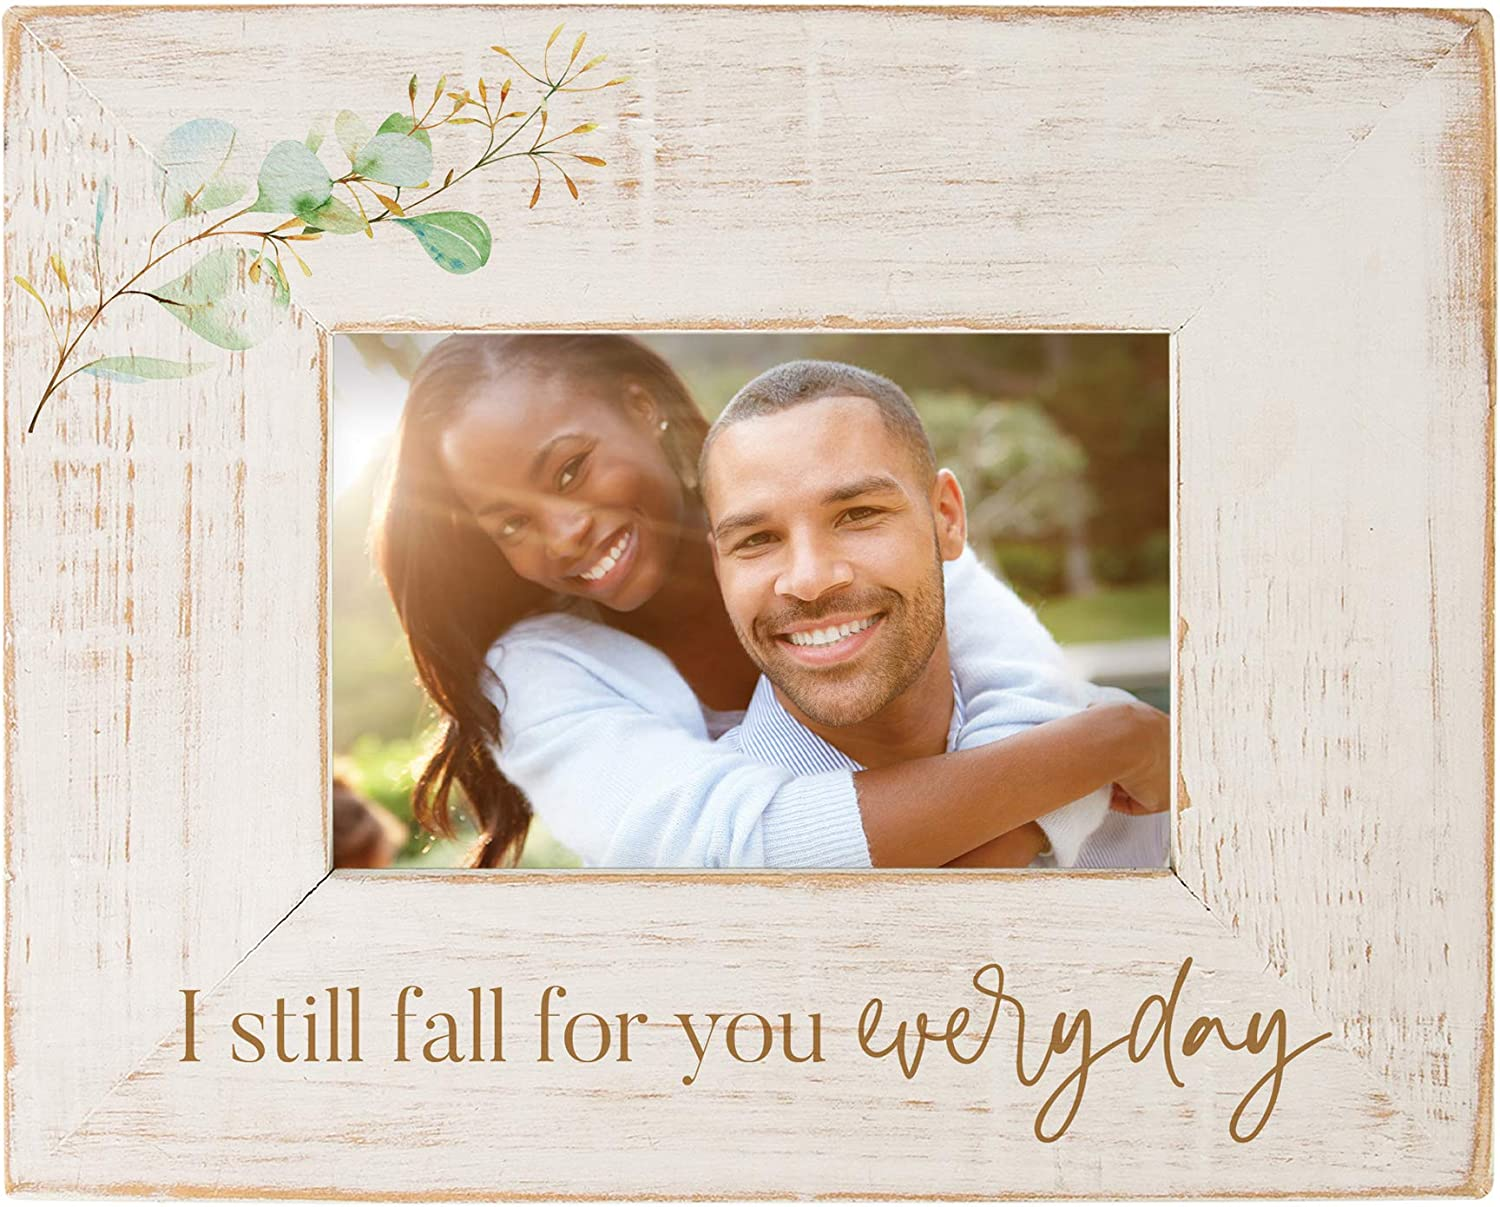 P. Graham Dunn Fall You Everyday Distressed Cream 9.875 x 7.75 Pine Wood Tabletop Photo Frame